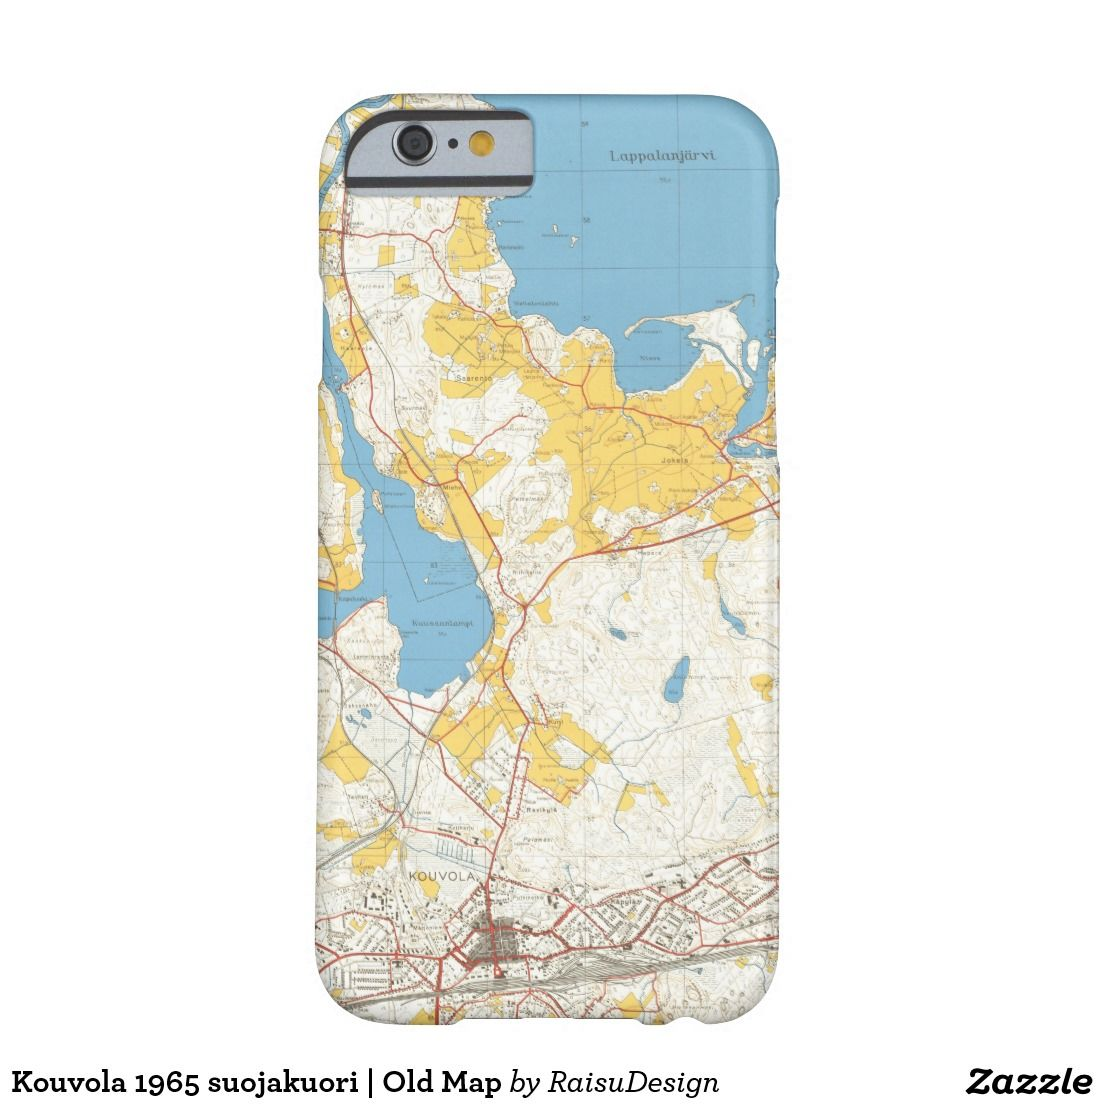 Kouvola 1965 suojakuori Old Map Barely There iPhone 6 Case